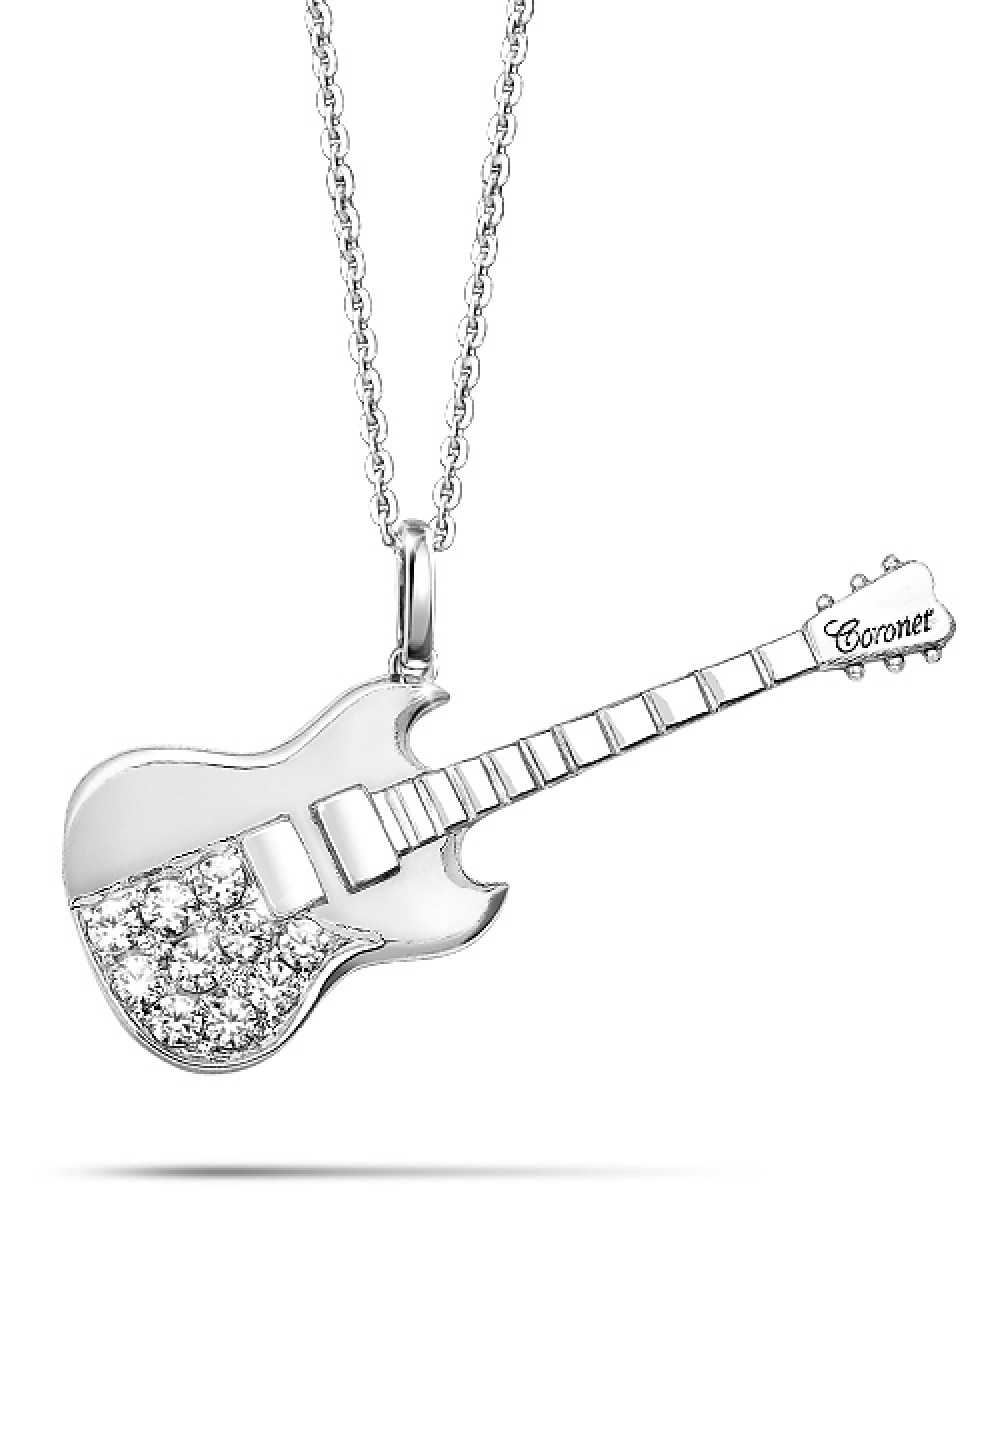 approx package black guitar inch sliver w necklace color itm x steel includes t and pendant stainless l cm silvery size